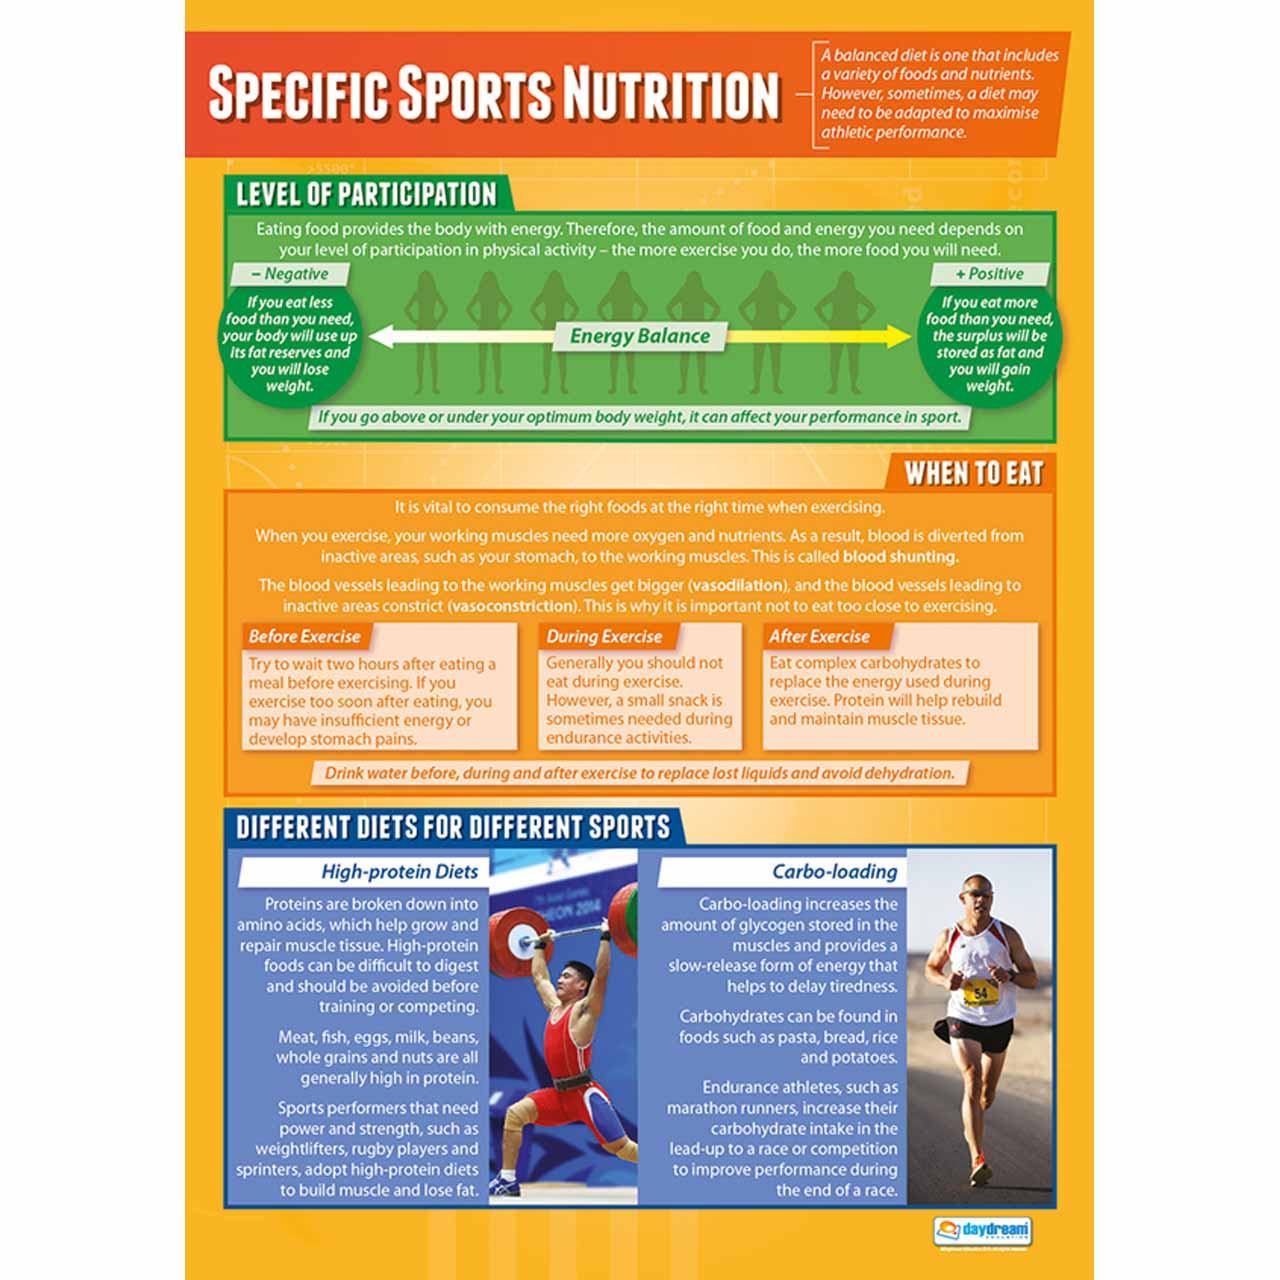 Specific Sports Nutrition